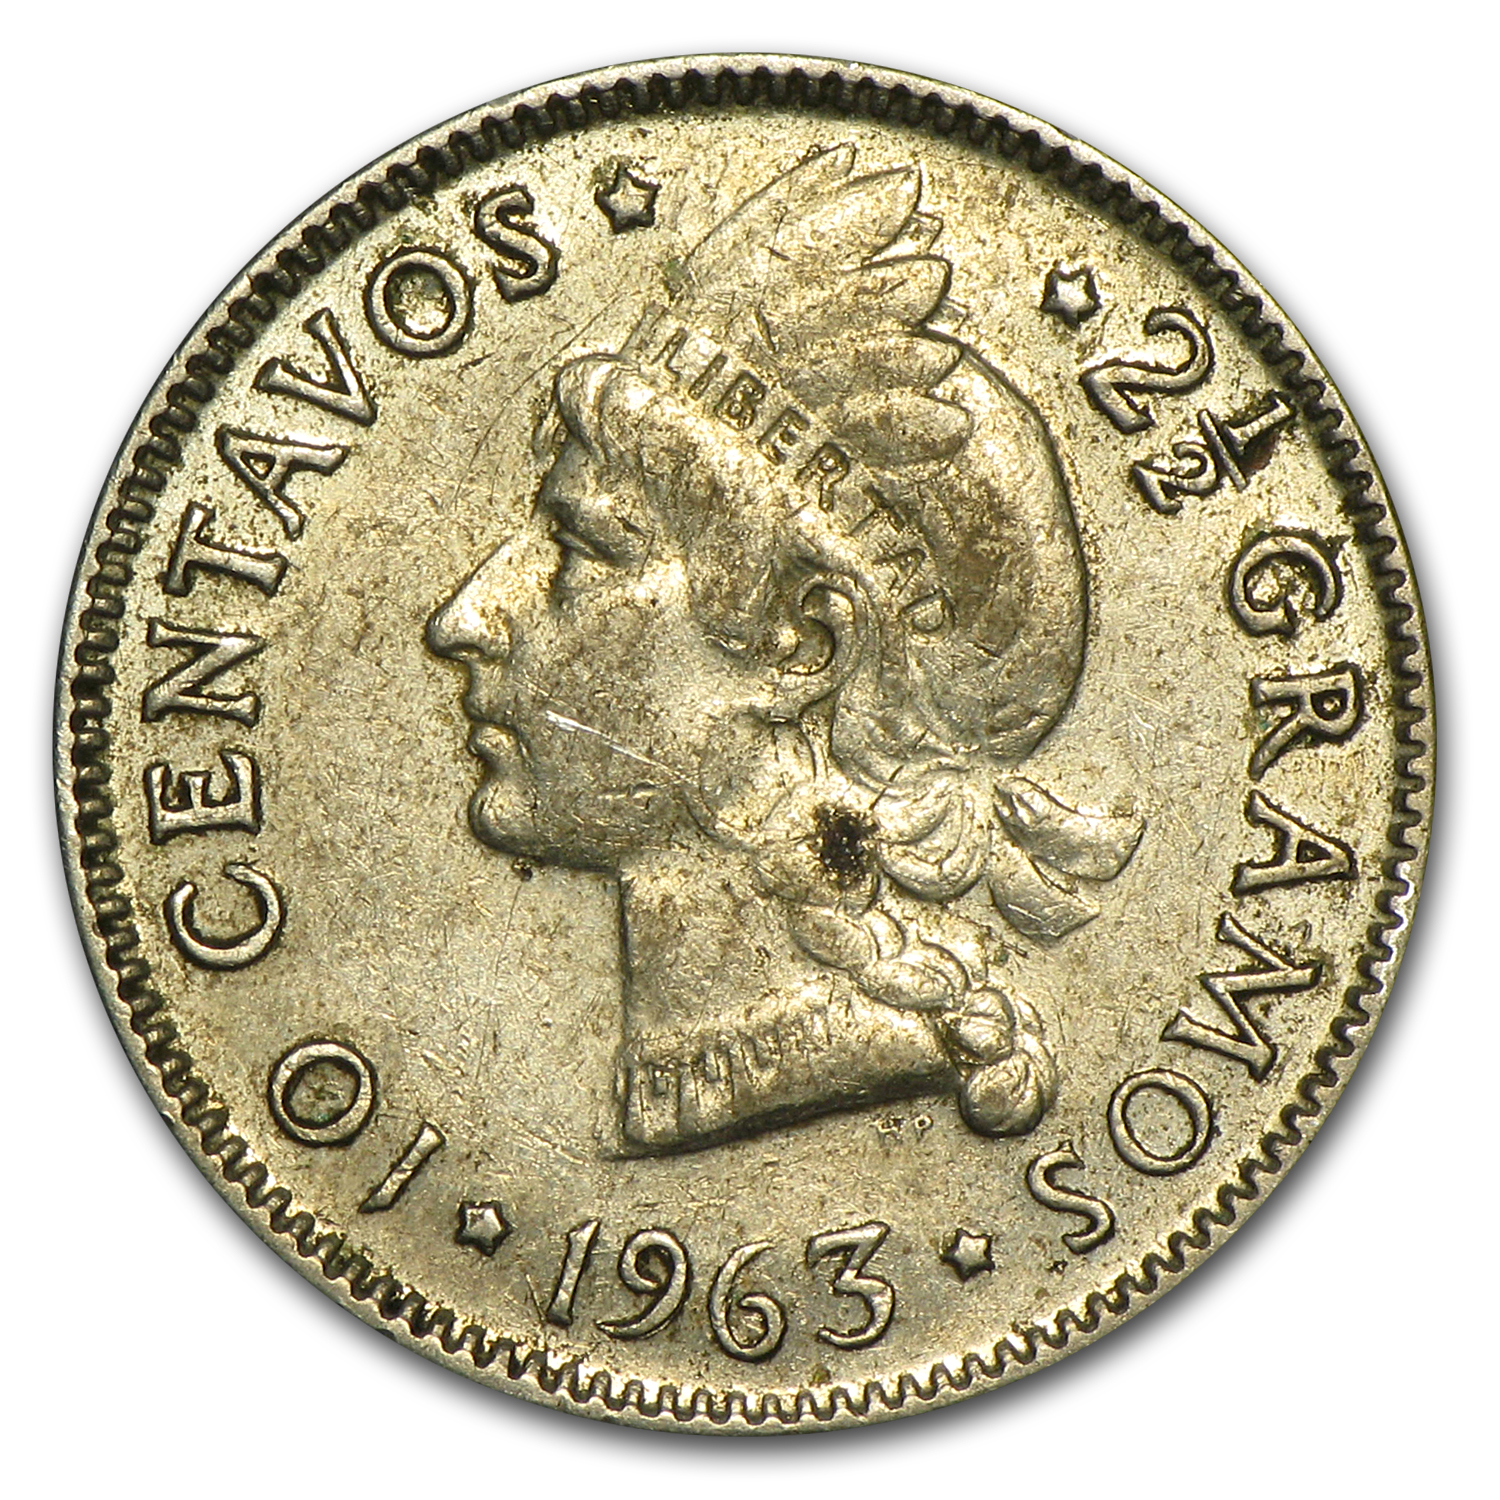 1963 Dominican Republic 10 Centavos Avg Circ